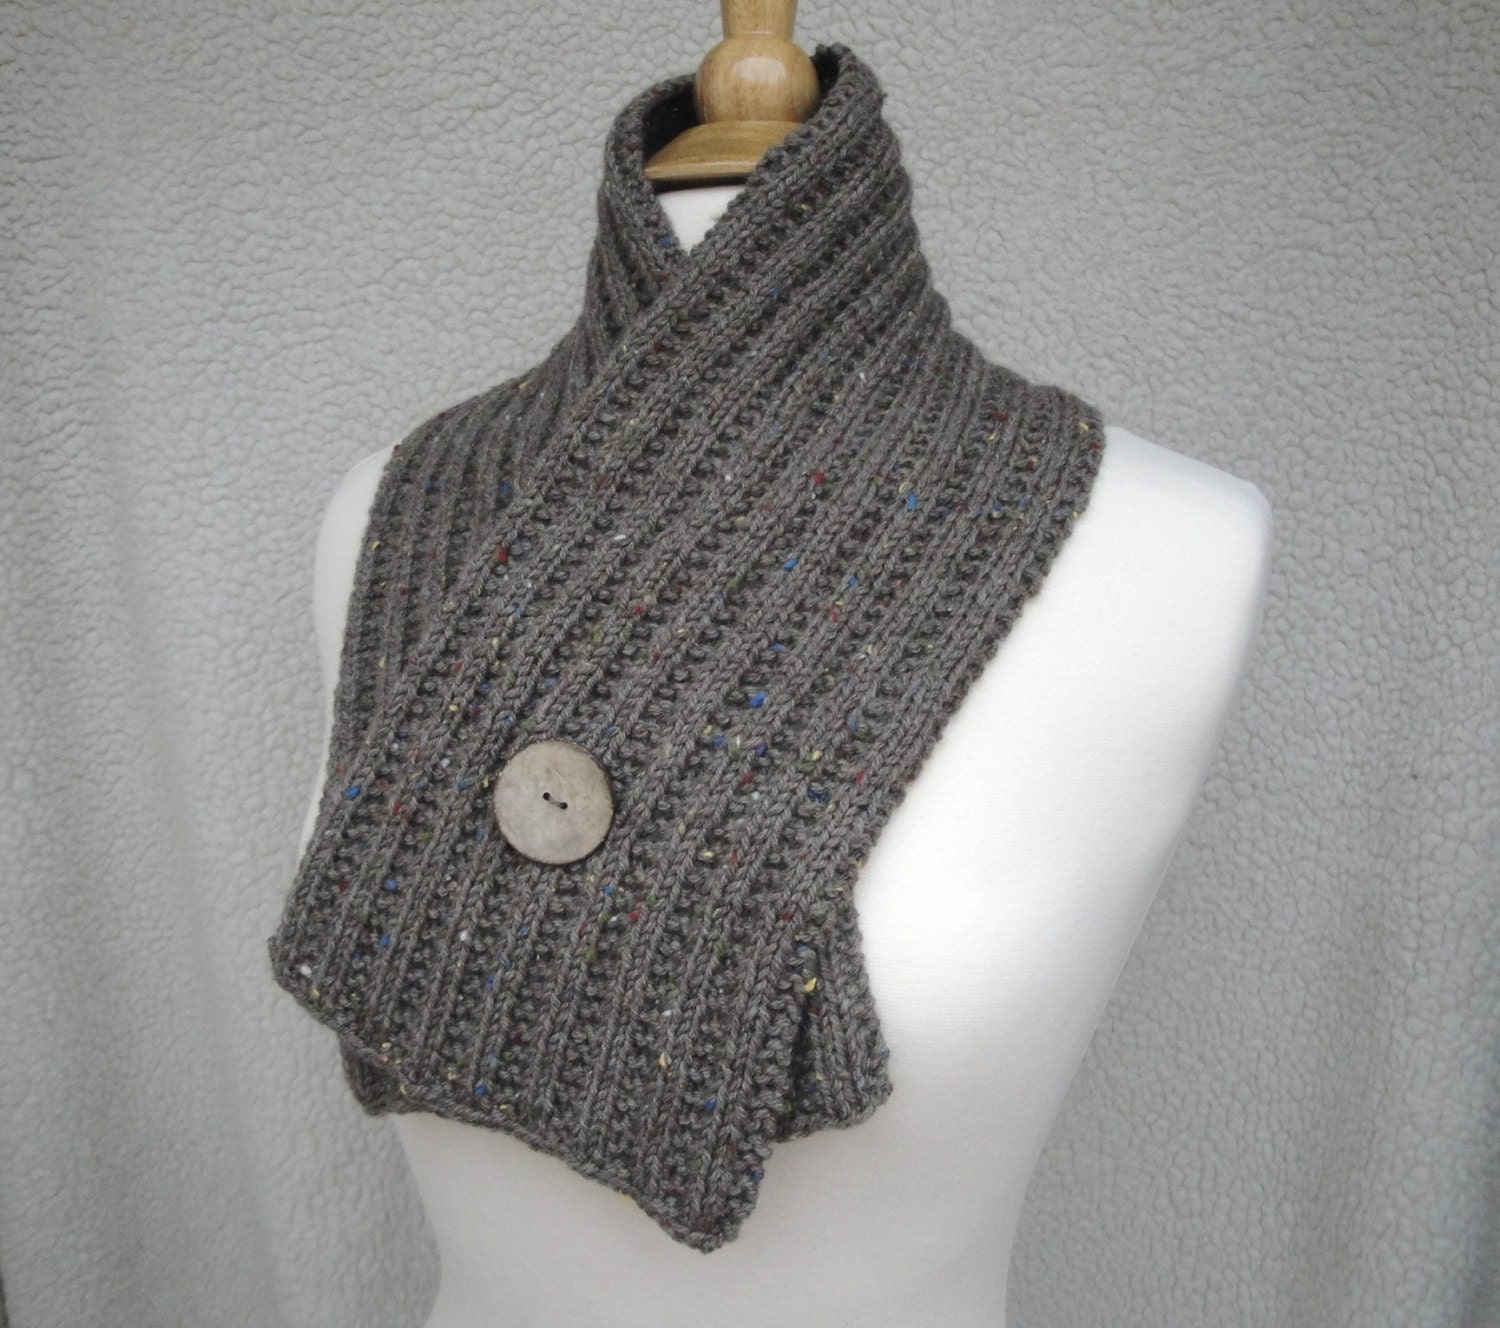 Knitting Pattern For Scarf With Buttonhole : Button Wrap Scarf Knitting Pattern DIY Crossover Scarf Cowl